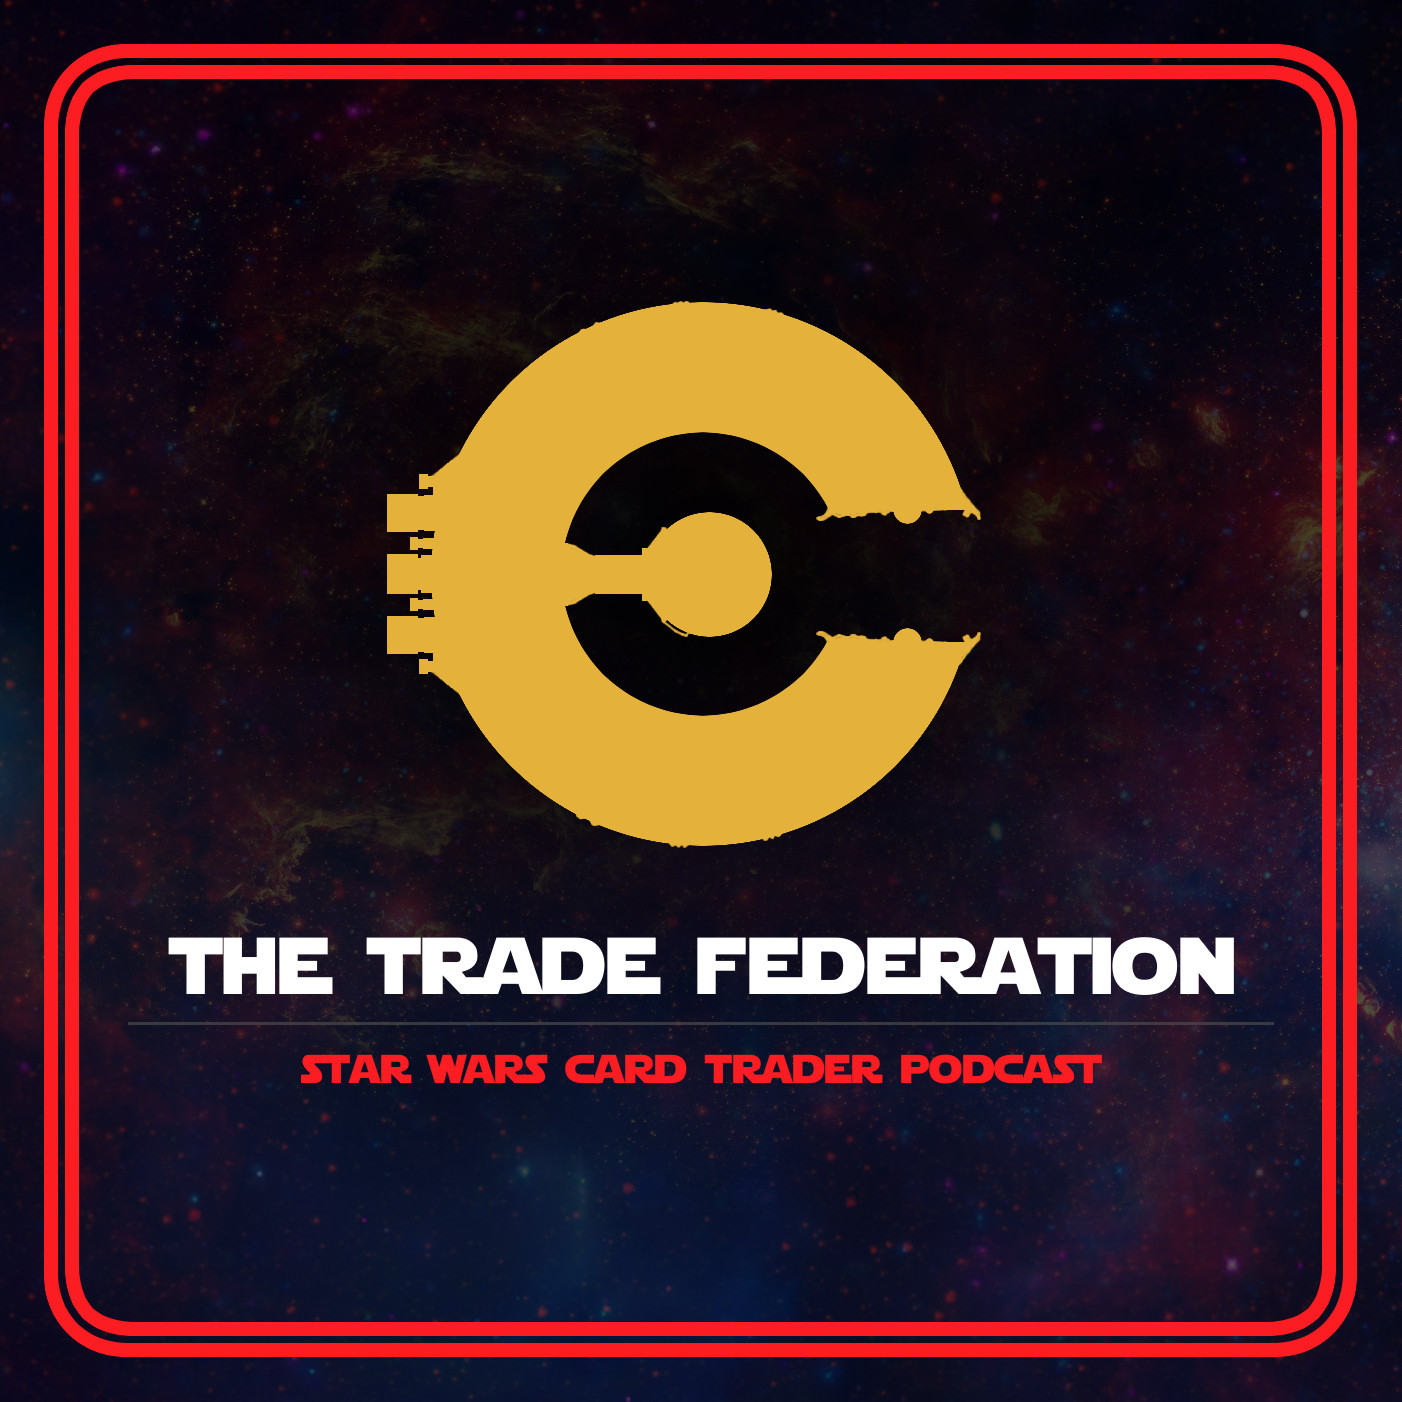 posters, 8-bit set, The Trade Federation podcast, Star Wars Card Trader, Star Wars Card Trader, poll, Reypocalypse, Anniversary